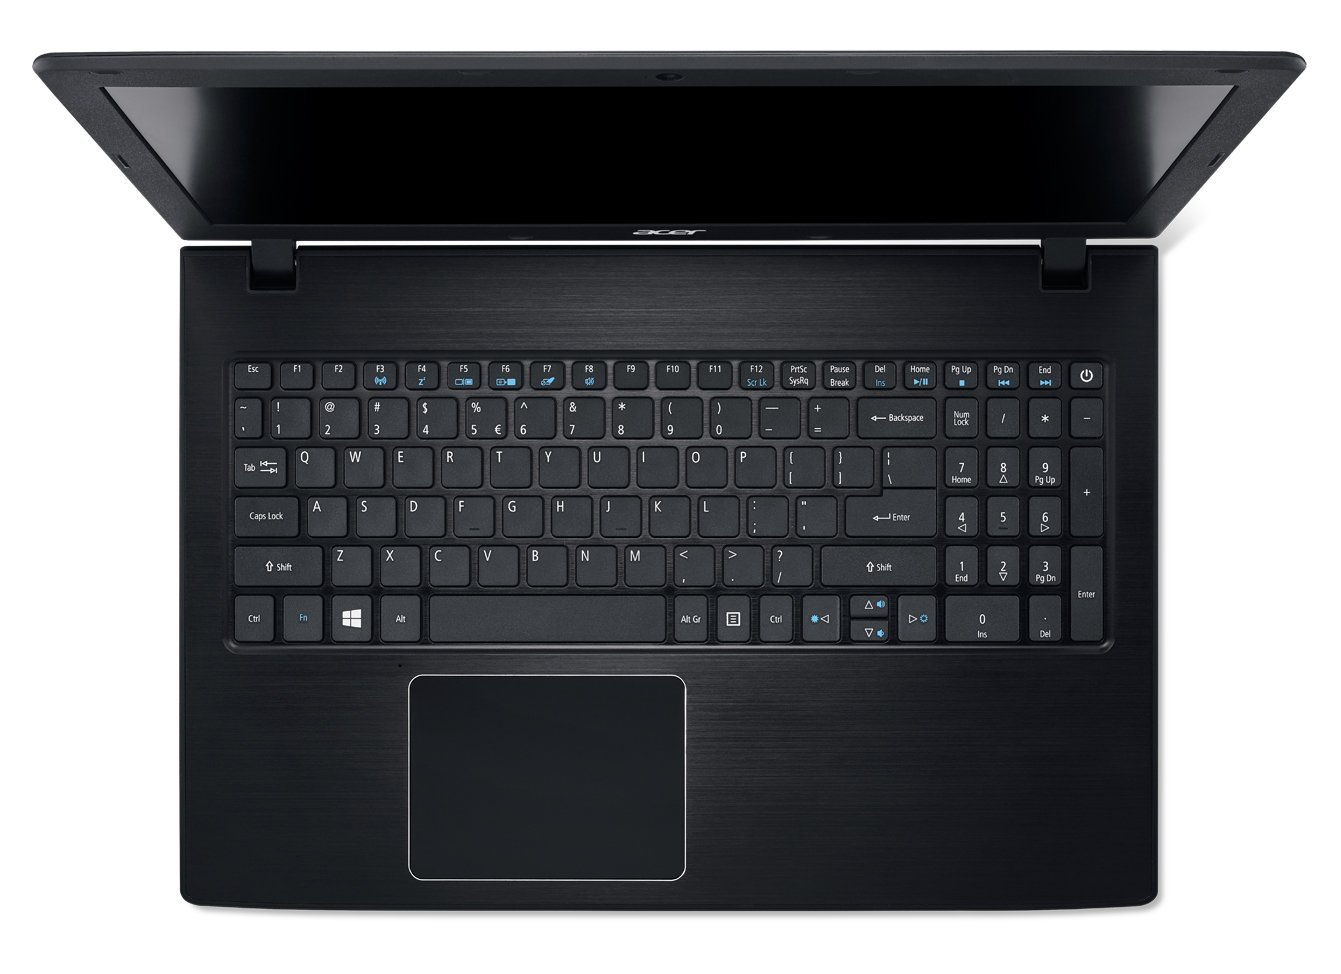 Acer Aspire E 15 E5-575G-53VG Gaming Notebook Review acer aspire e 15 gaming notebook review Acer Aspire E 15 E5-575G-53VG Gaming Notebook Review ca18f6318c45becbabf4751ab4e92e47